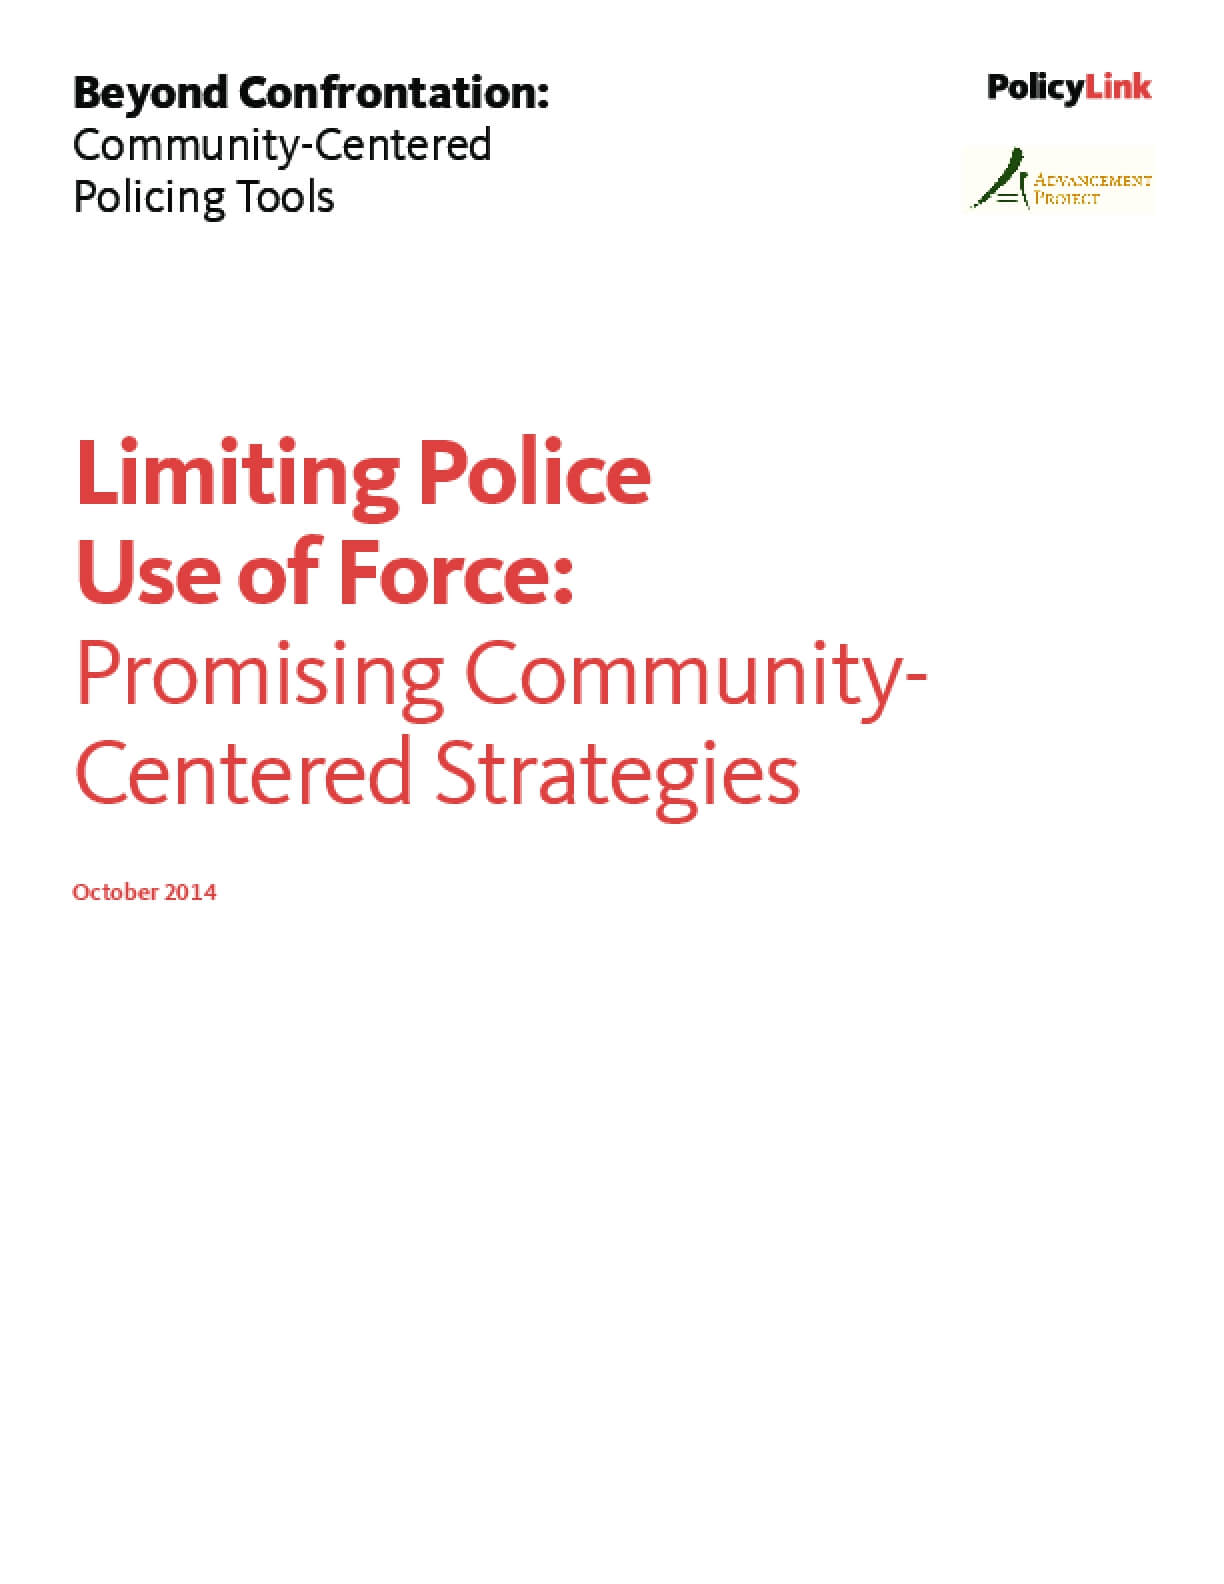 Limiting Police Use of Force: Promising Community-Centered Strategies